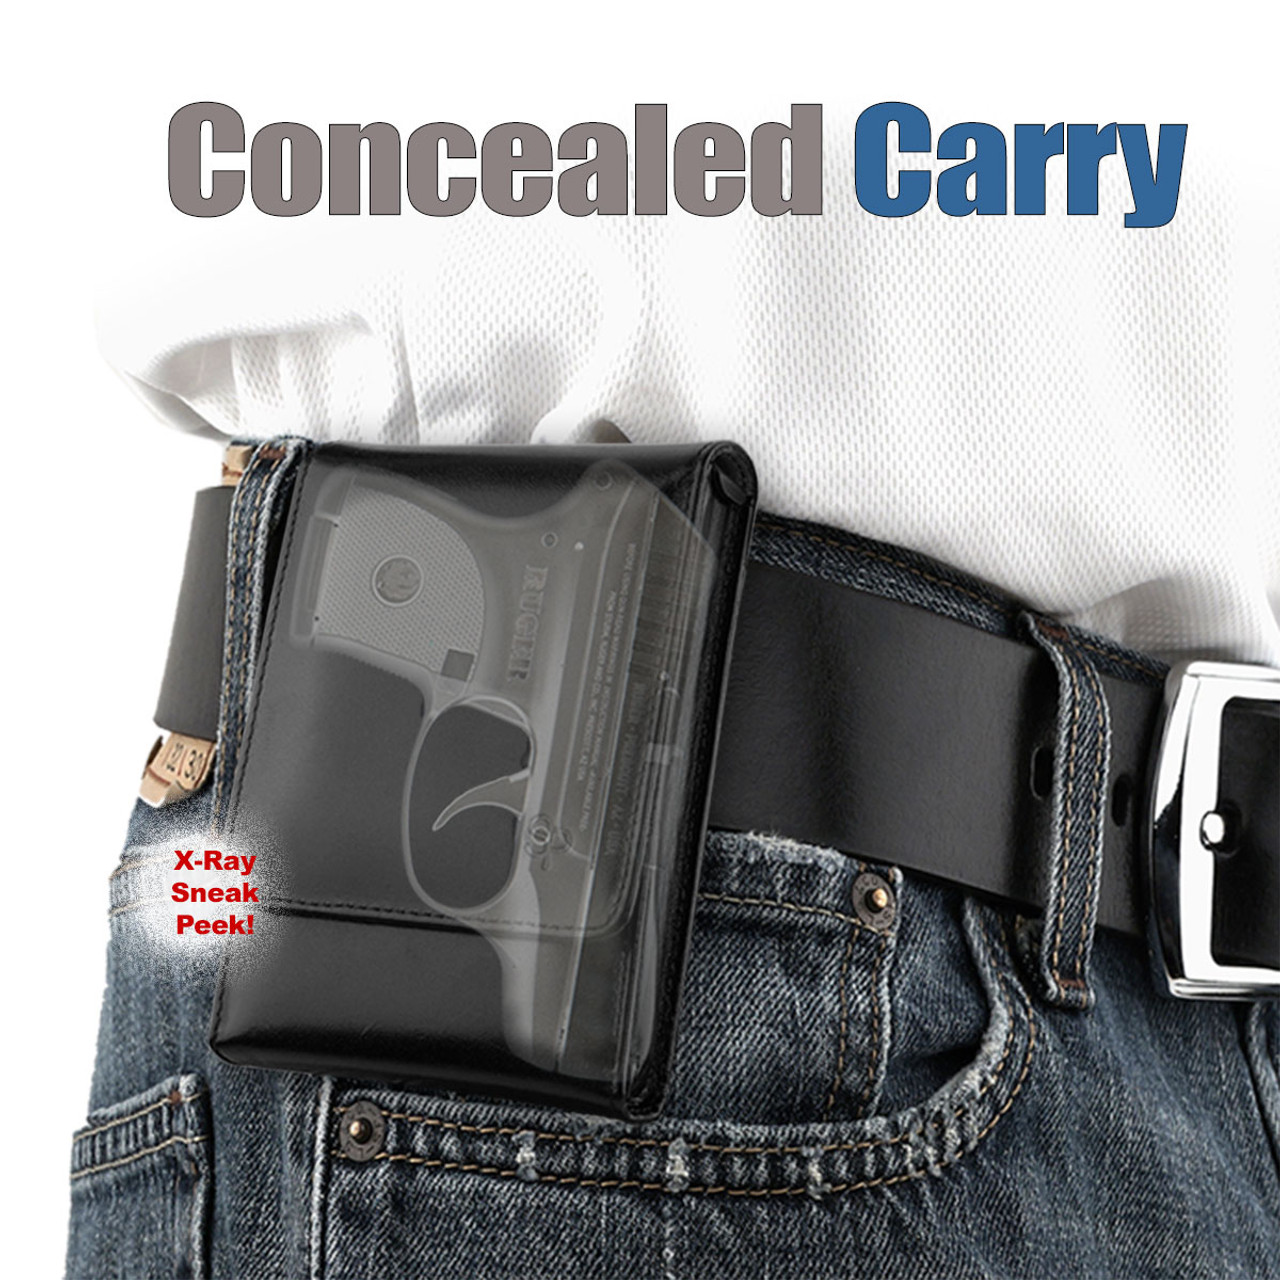 Kahr CW9 Concealed Carry Holster (Belt Loop)